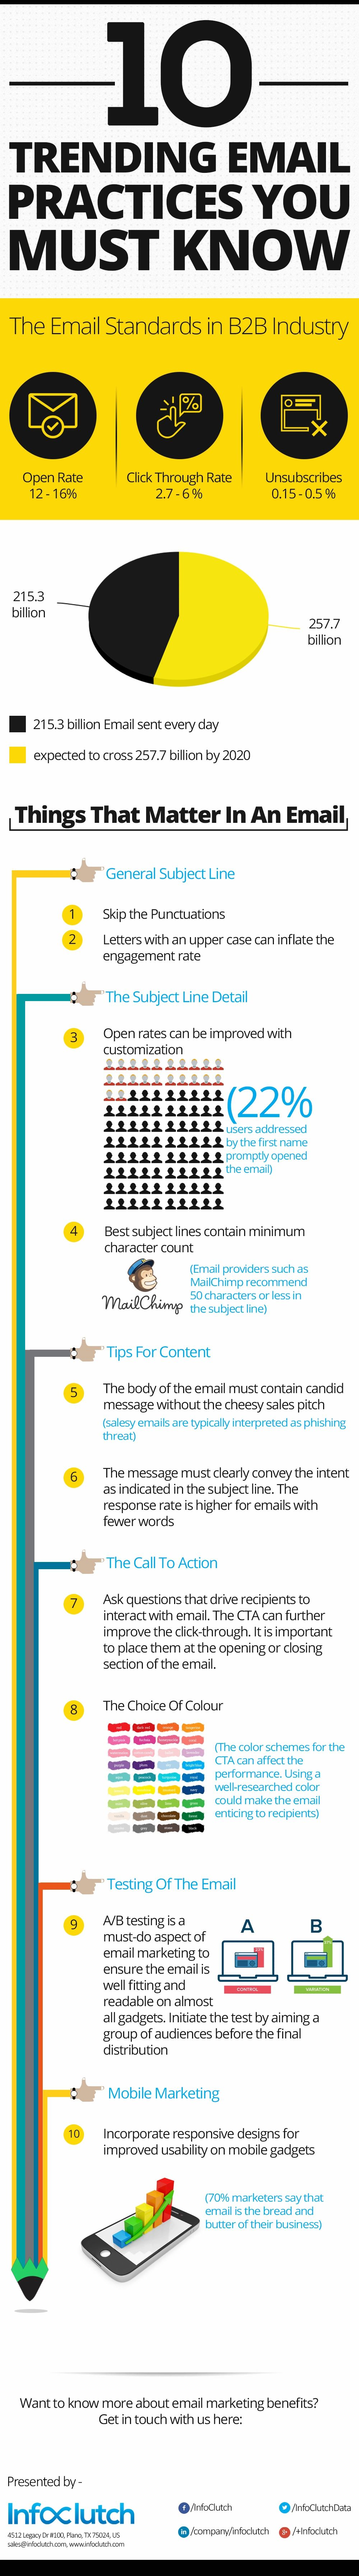 How Can Email Marketing Boost Your 2017 Marketing Campaign [Infographic]